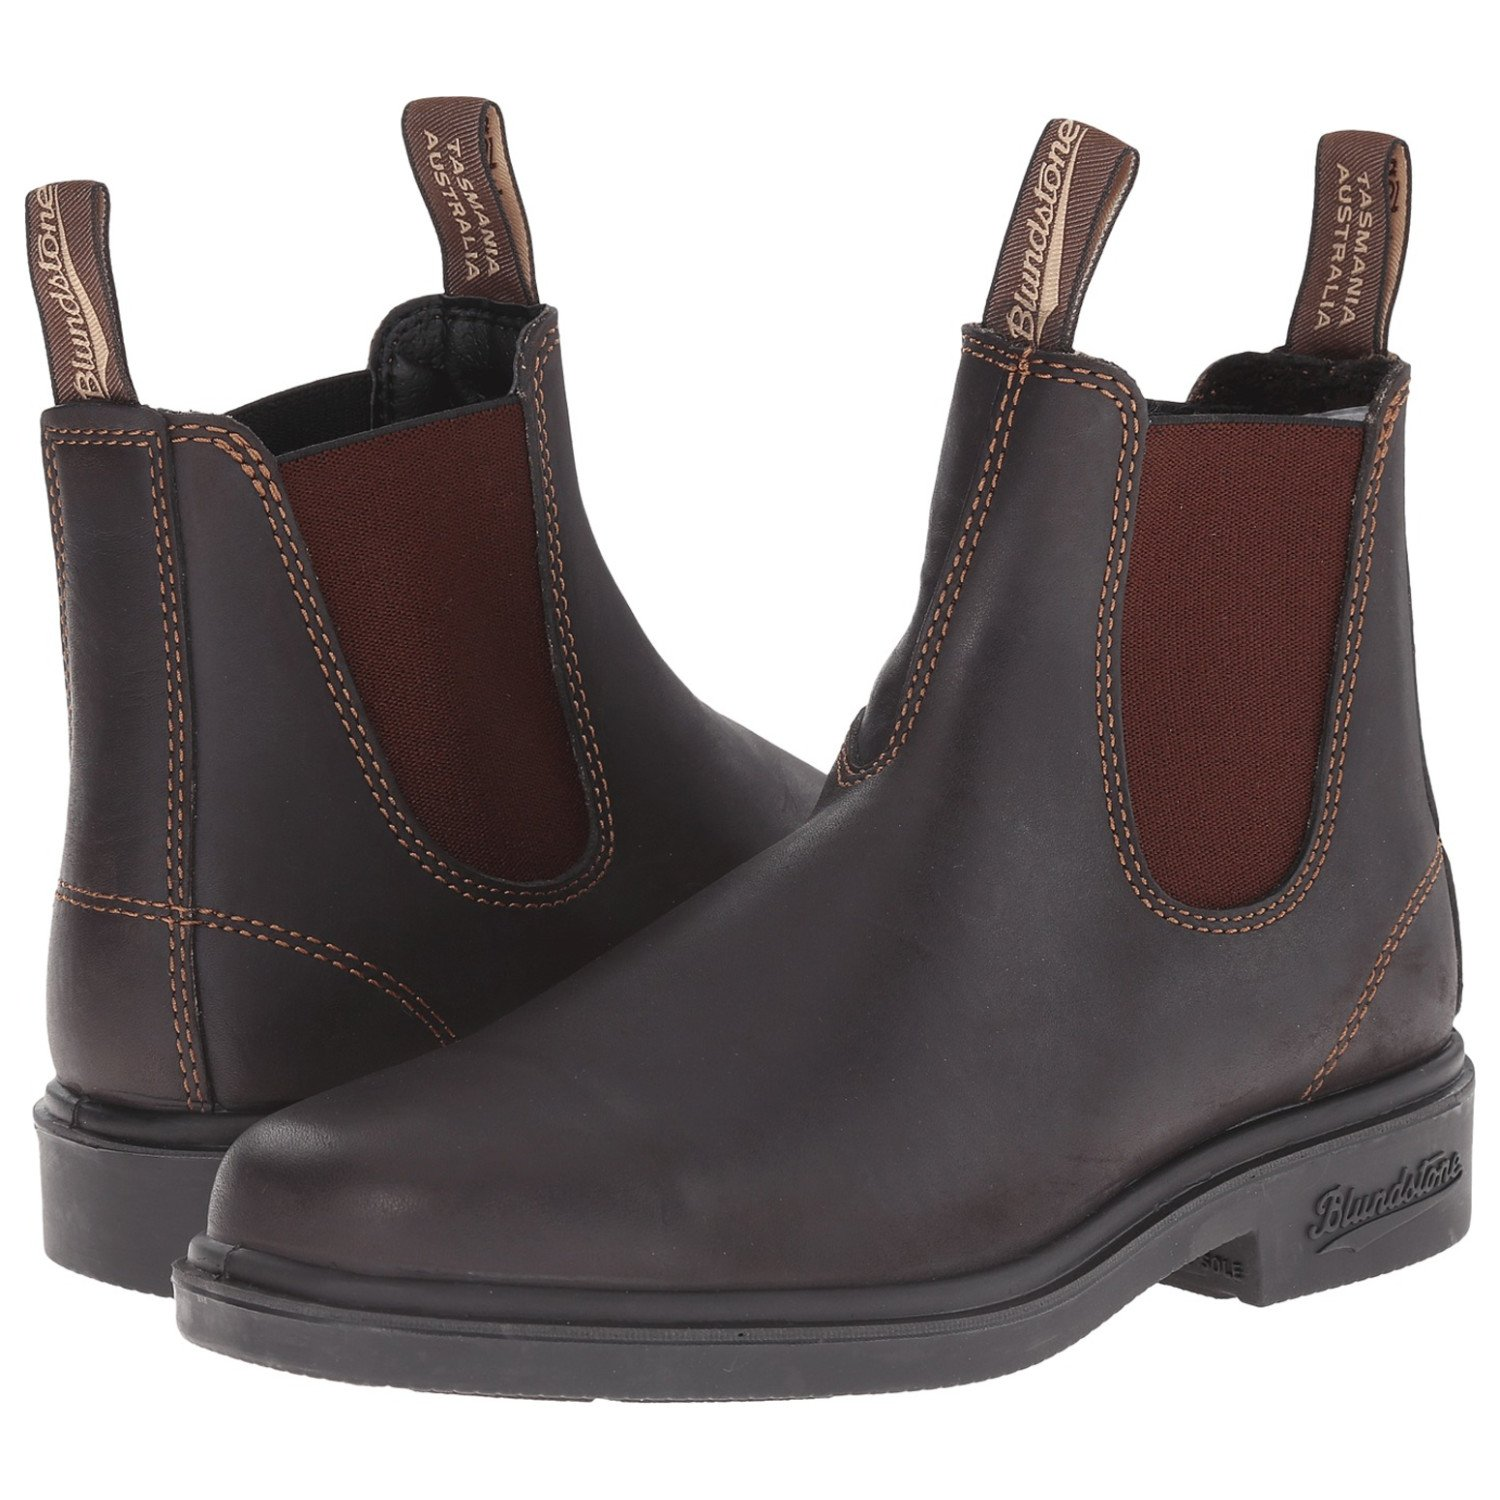 Blundstone Unisex Dress Series, Stout Brown, 10.5 M US Men's /12.5 M US Women's -9.5 AU